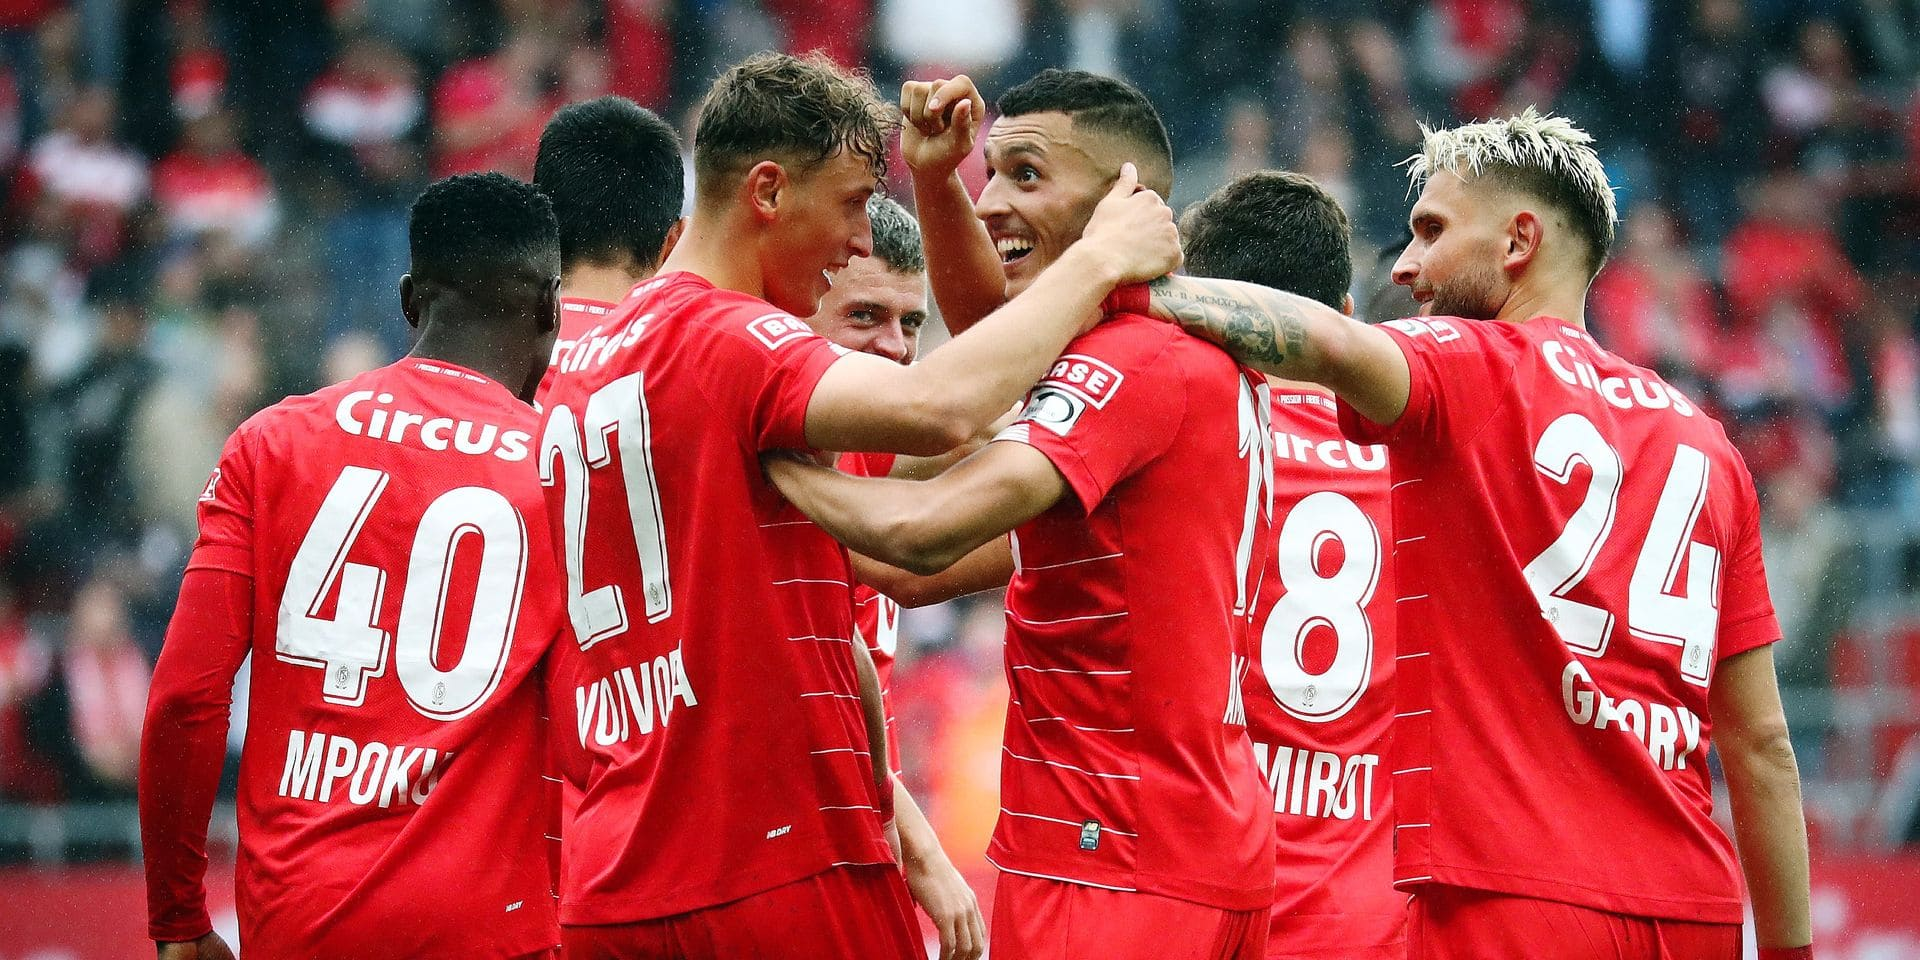 Standard's Selim Amallah (C) celebrates with his teammates after scoring during a soccer match between Standard de Liege and Excel Mouscron, Sunday 18 August 2019 in Liege, on the fourth day of the 'Jupiler Pro League' Belgian soccer championship season 2019-2020. BELGA PHOTO VIRGINIE LEFOUR